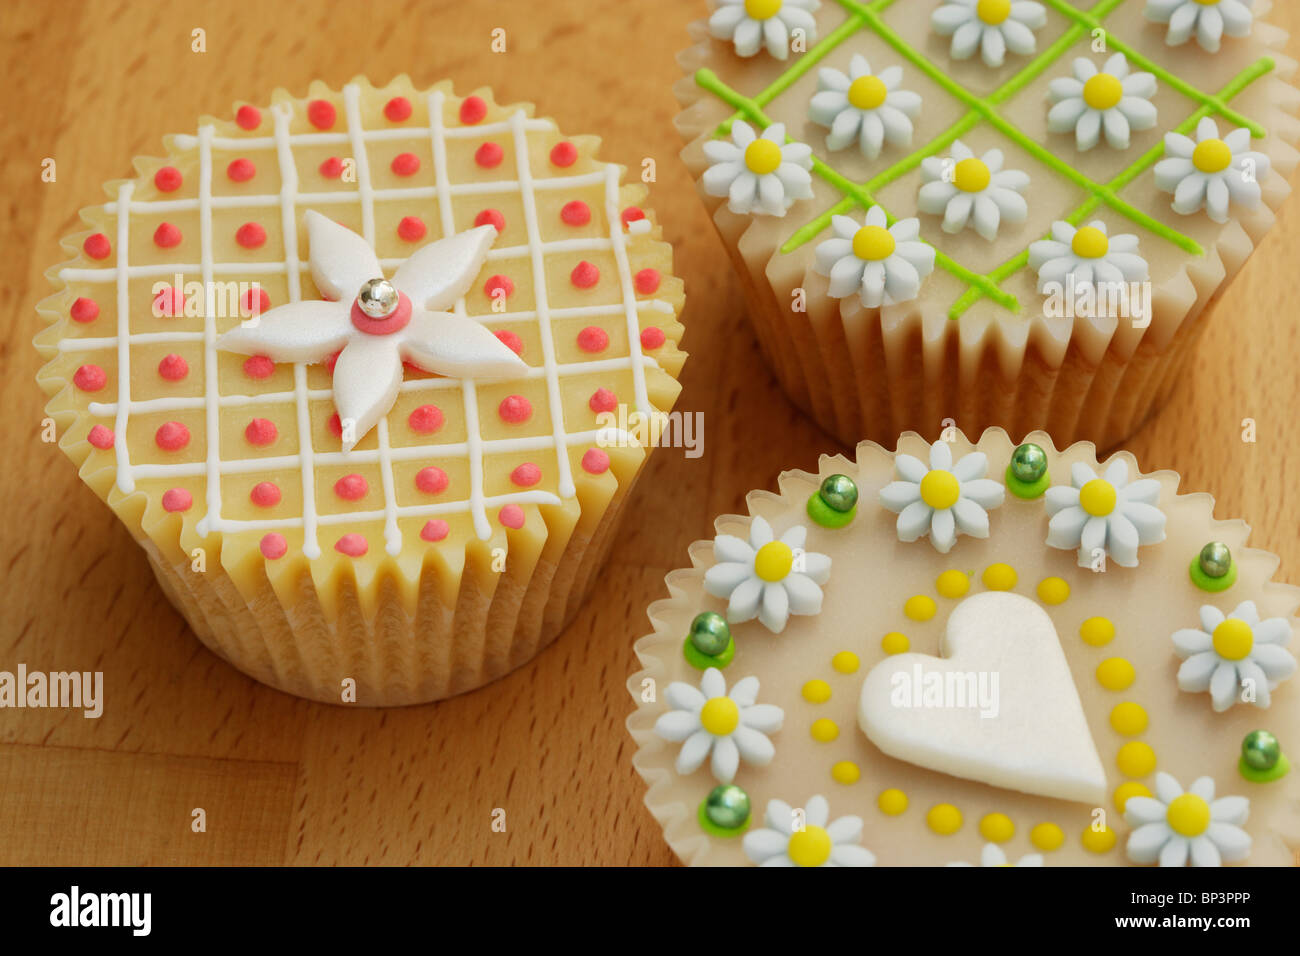 Highly decorated cup cakes - Stock Image